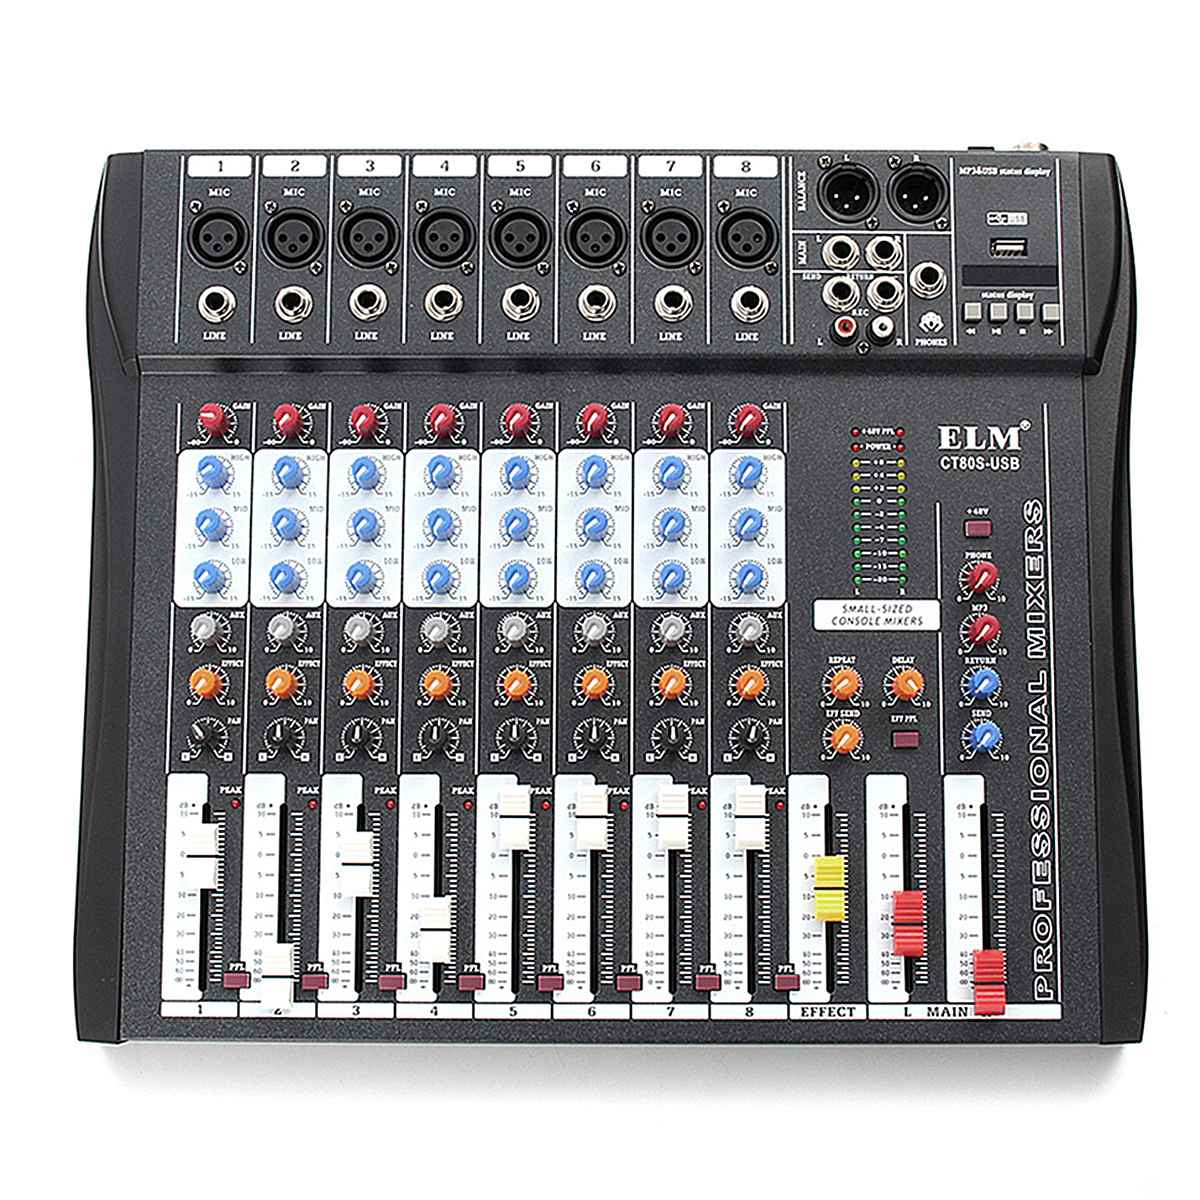 ELM Professional 8Channel DJ Sound Mixer Karaoke Audio Mixing Console For Microphone Amplifier With 48V Phantom Power USB Jack